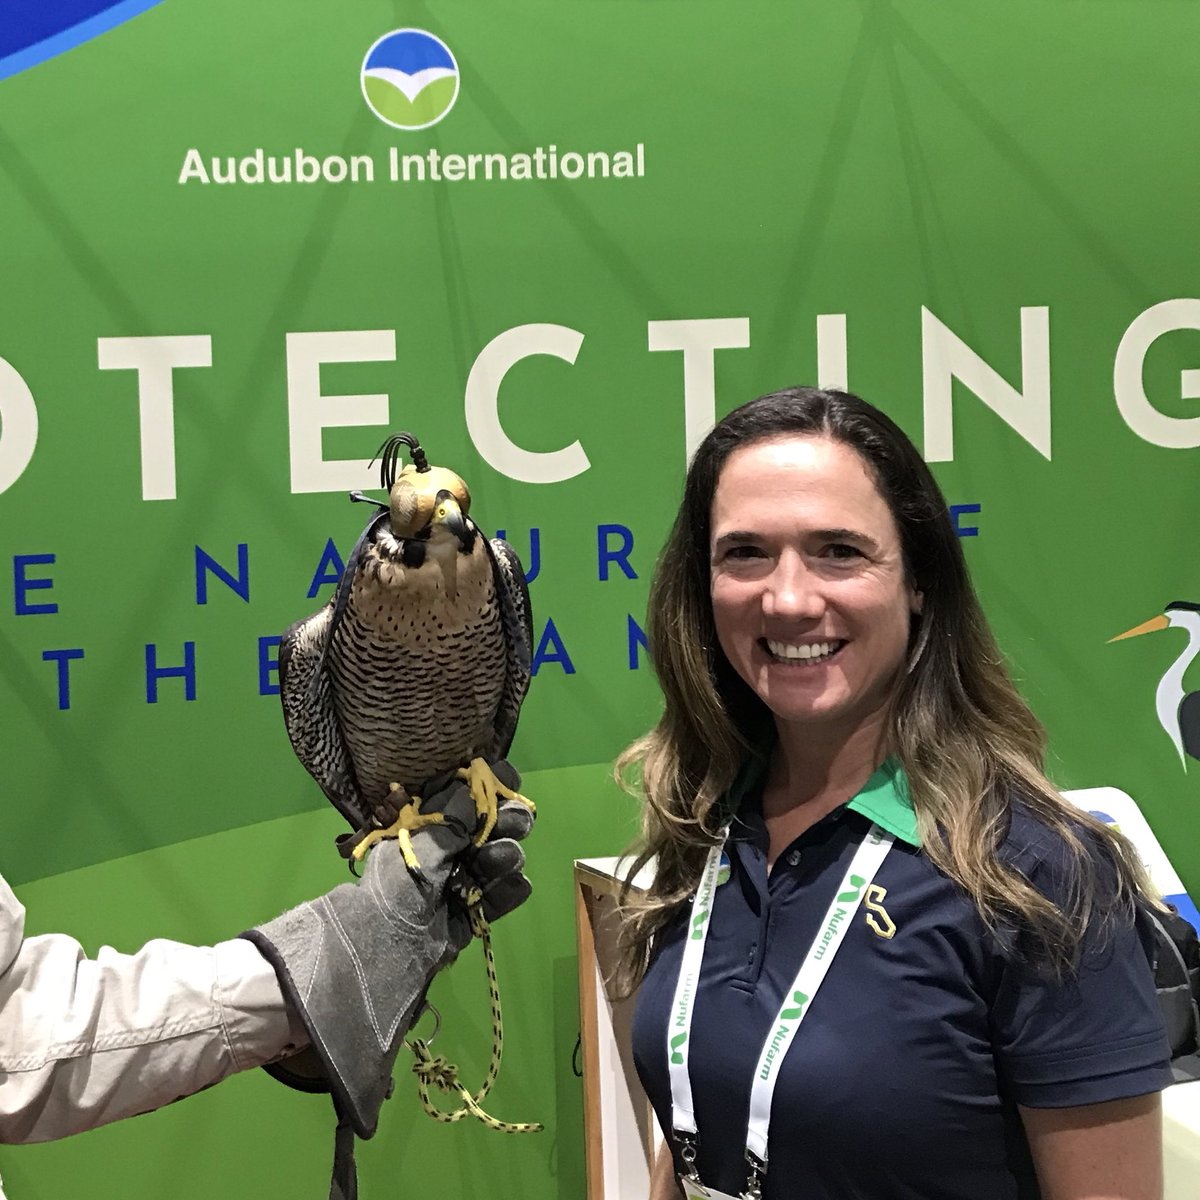 If you are at @GIS_2019 and planning on a future golf course renovation, please stop by Booth 1121 and speak to Georgie about our exclusive #ClassicSanctuary certification program! #GIS2019 #GIS19 #golf #sustainablegolf